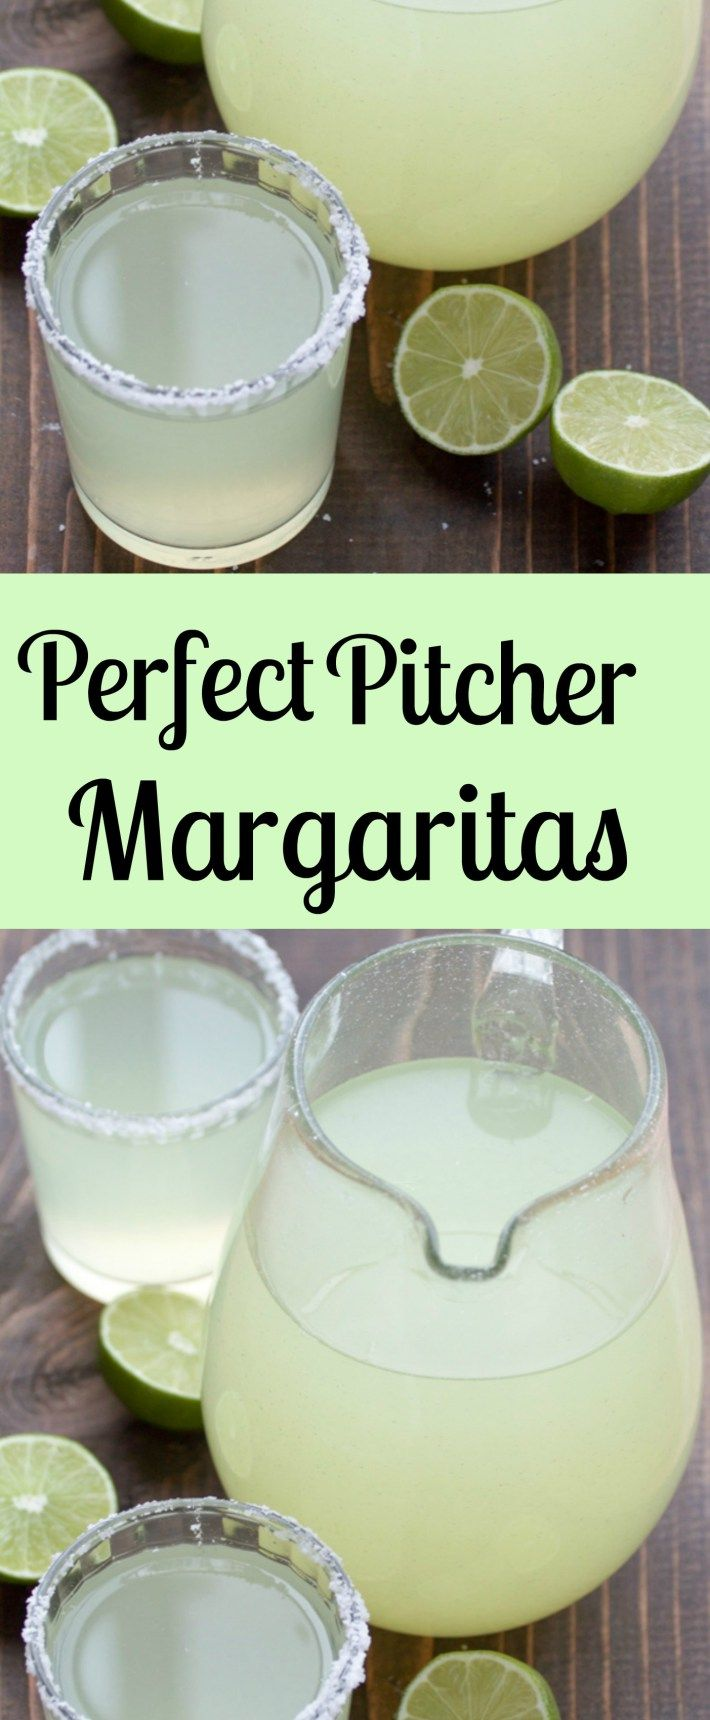 Perfect Pitcher Margarita recipe for a crowd. All you need is fresh lime juice, triple sec, and tequila. These make the best party